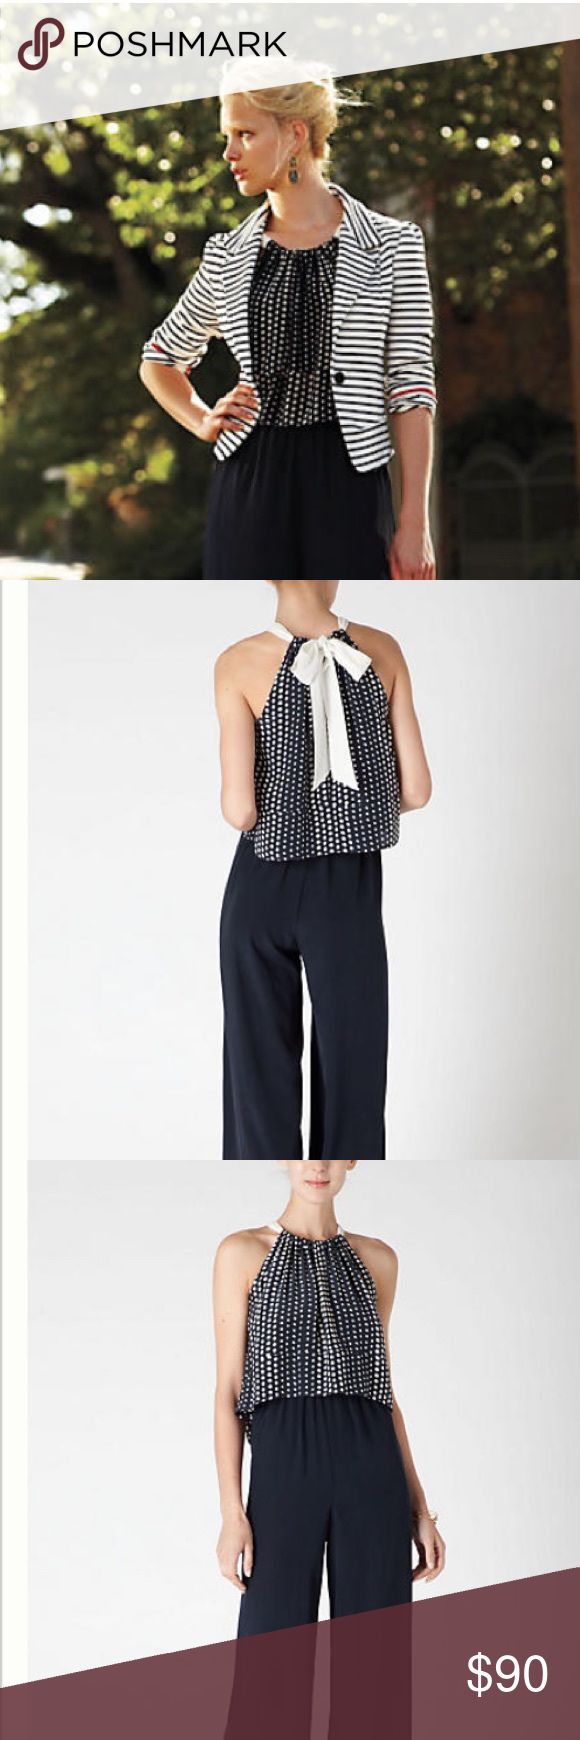 Anthropologie Strung Dots Romper Navy lightweight jumpsuit   Polka dot overlay with a tie in the back to create a halter look. Wide legs, elastic waist. Bought at Anthropologie in NYC. Worn once Anthropologie Pants Jumpsuits & Rompers